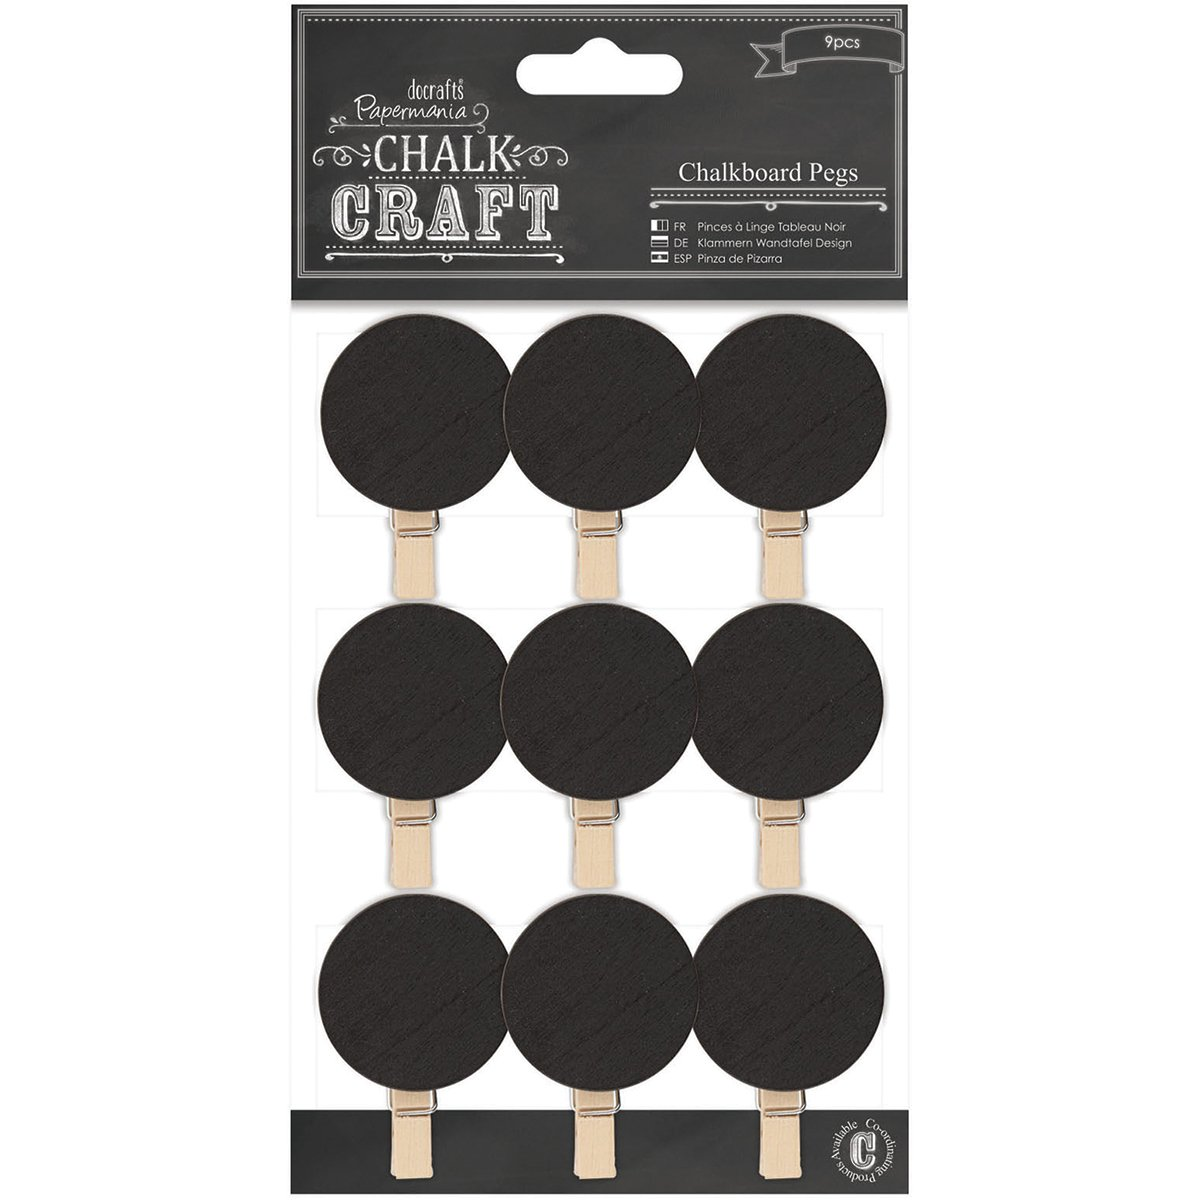 DOCrafts Chalk Craft Chalkboard, Pegs Circles